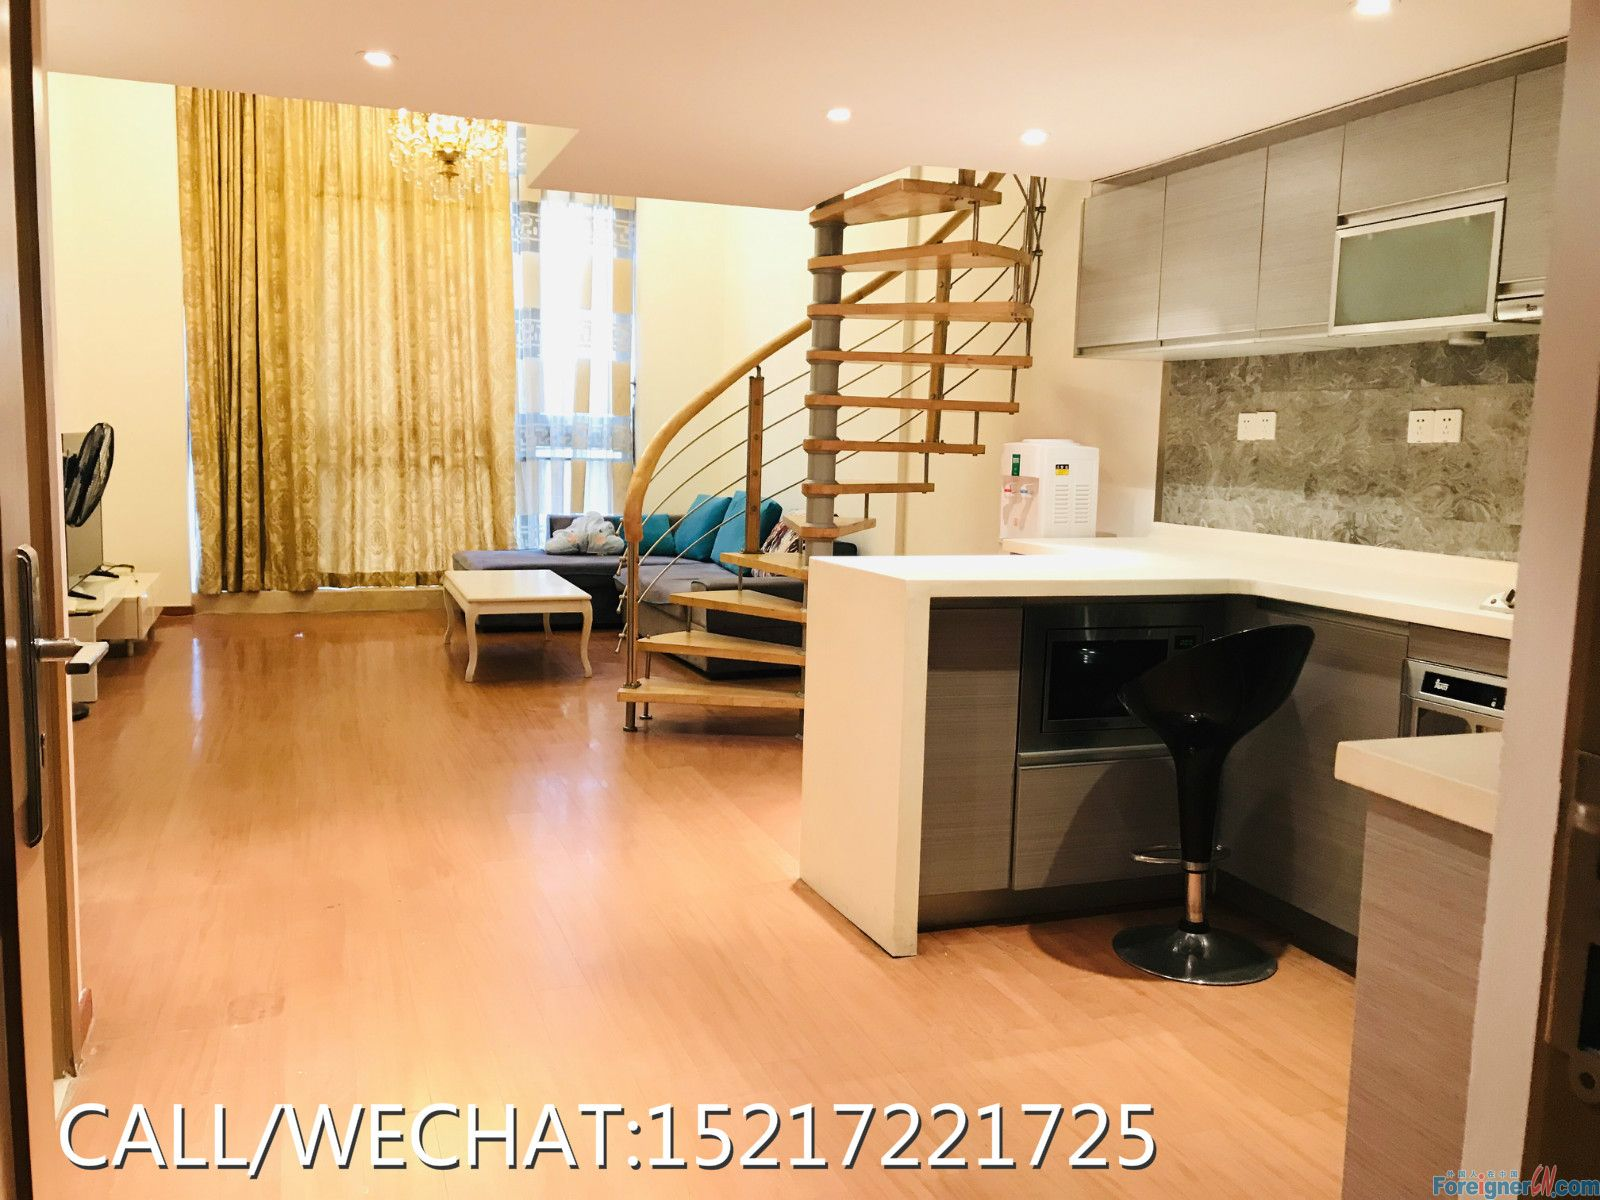 Moon Island-concise style,morden decorate,good price,urgent to rent,nice owner.easy talking.